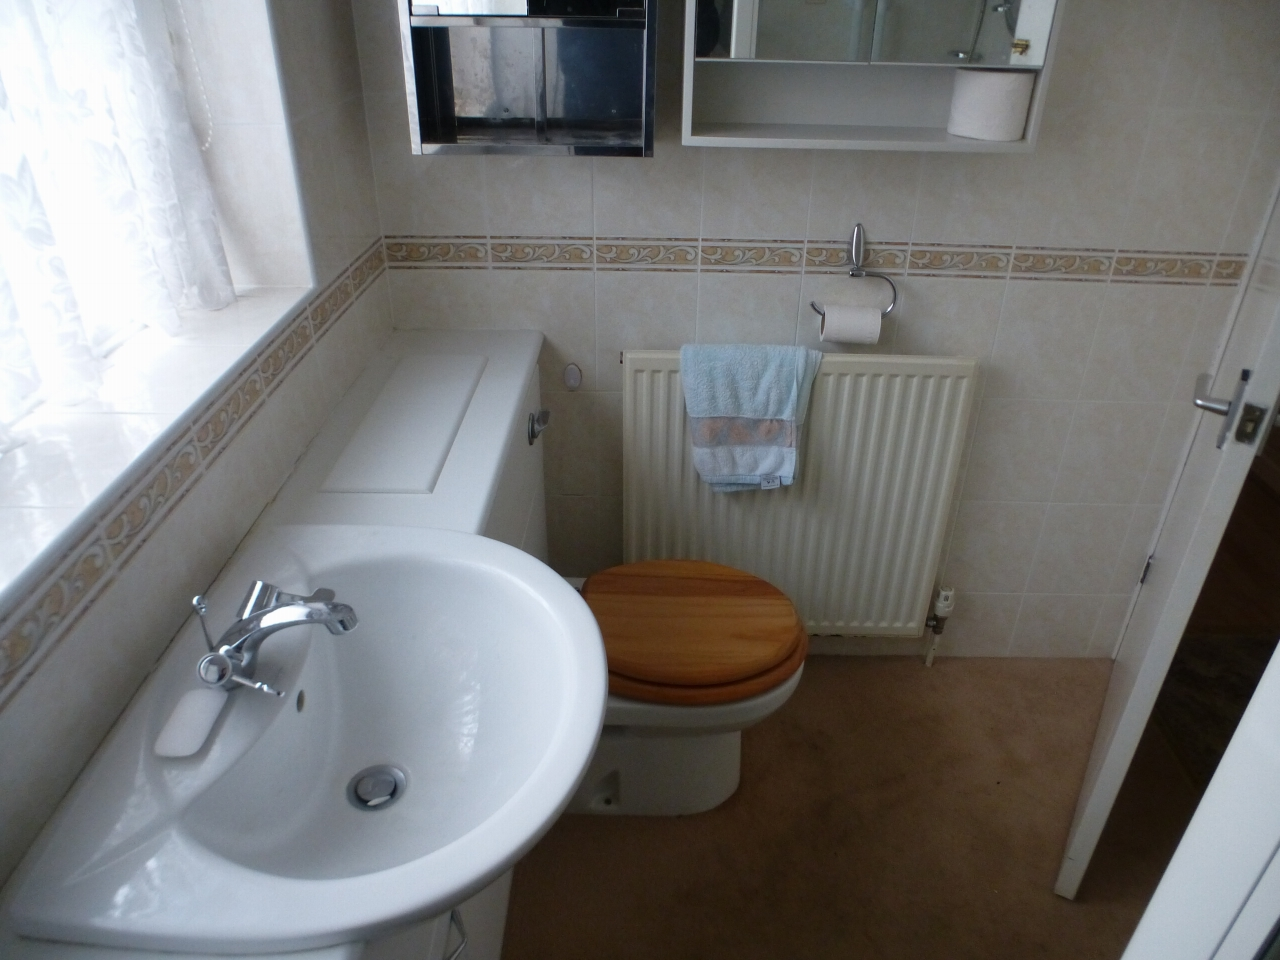 Image 2 of 2 of BATHROOM, on Accommodation Comprising for